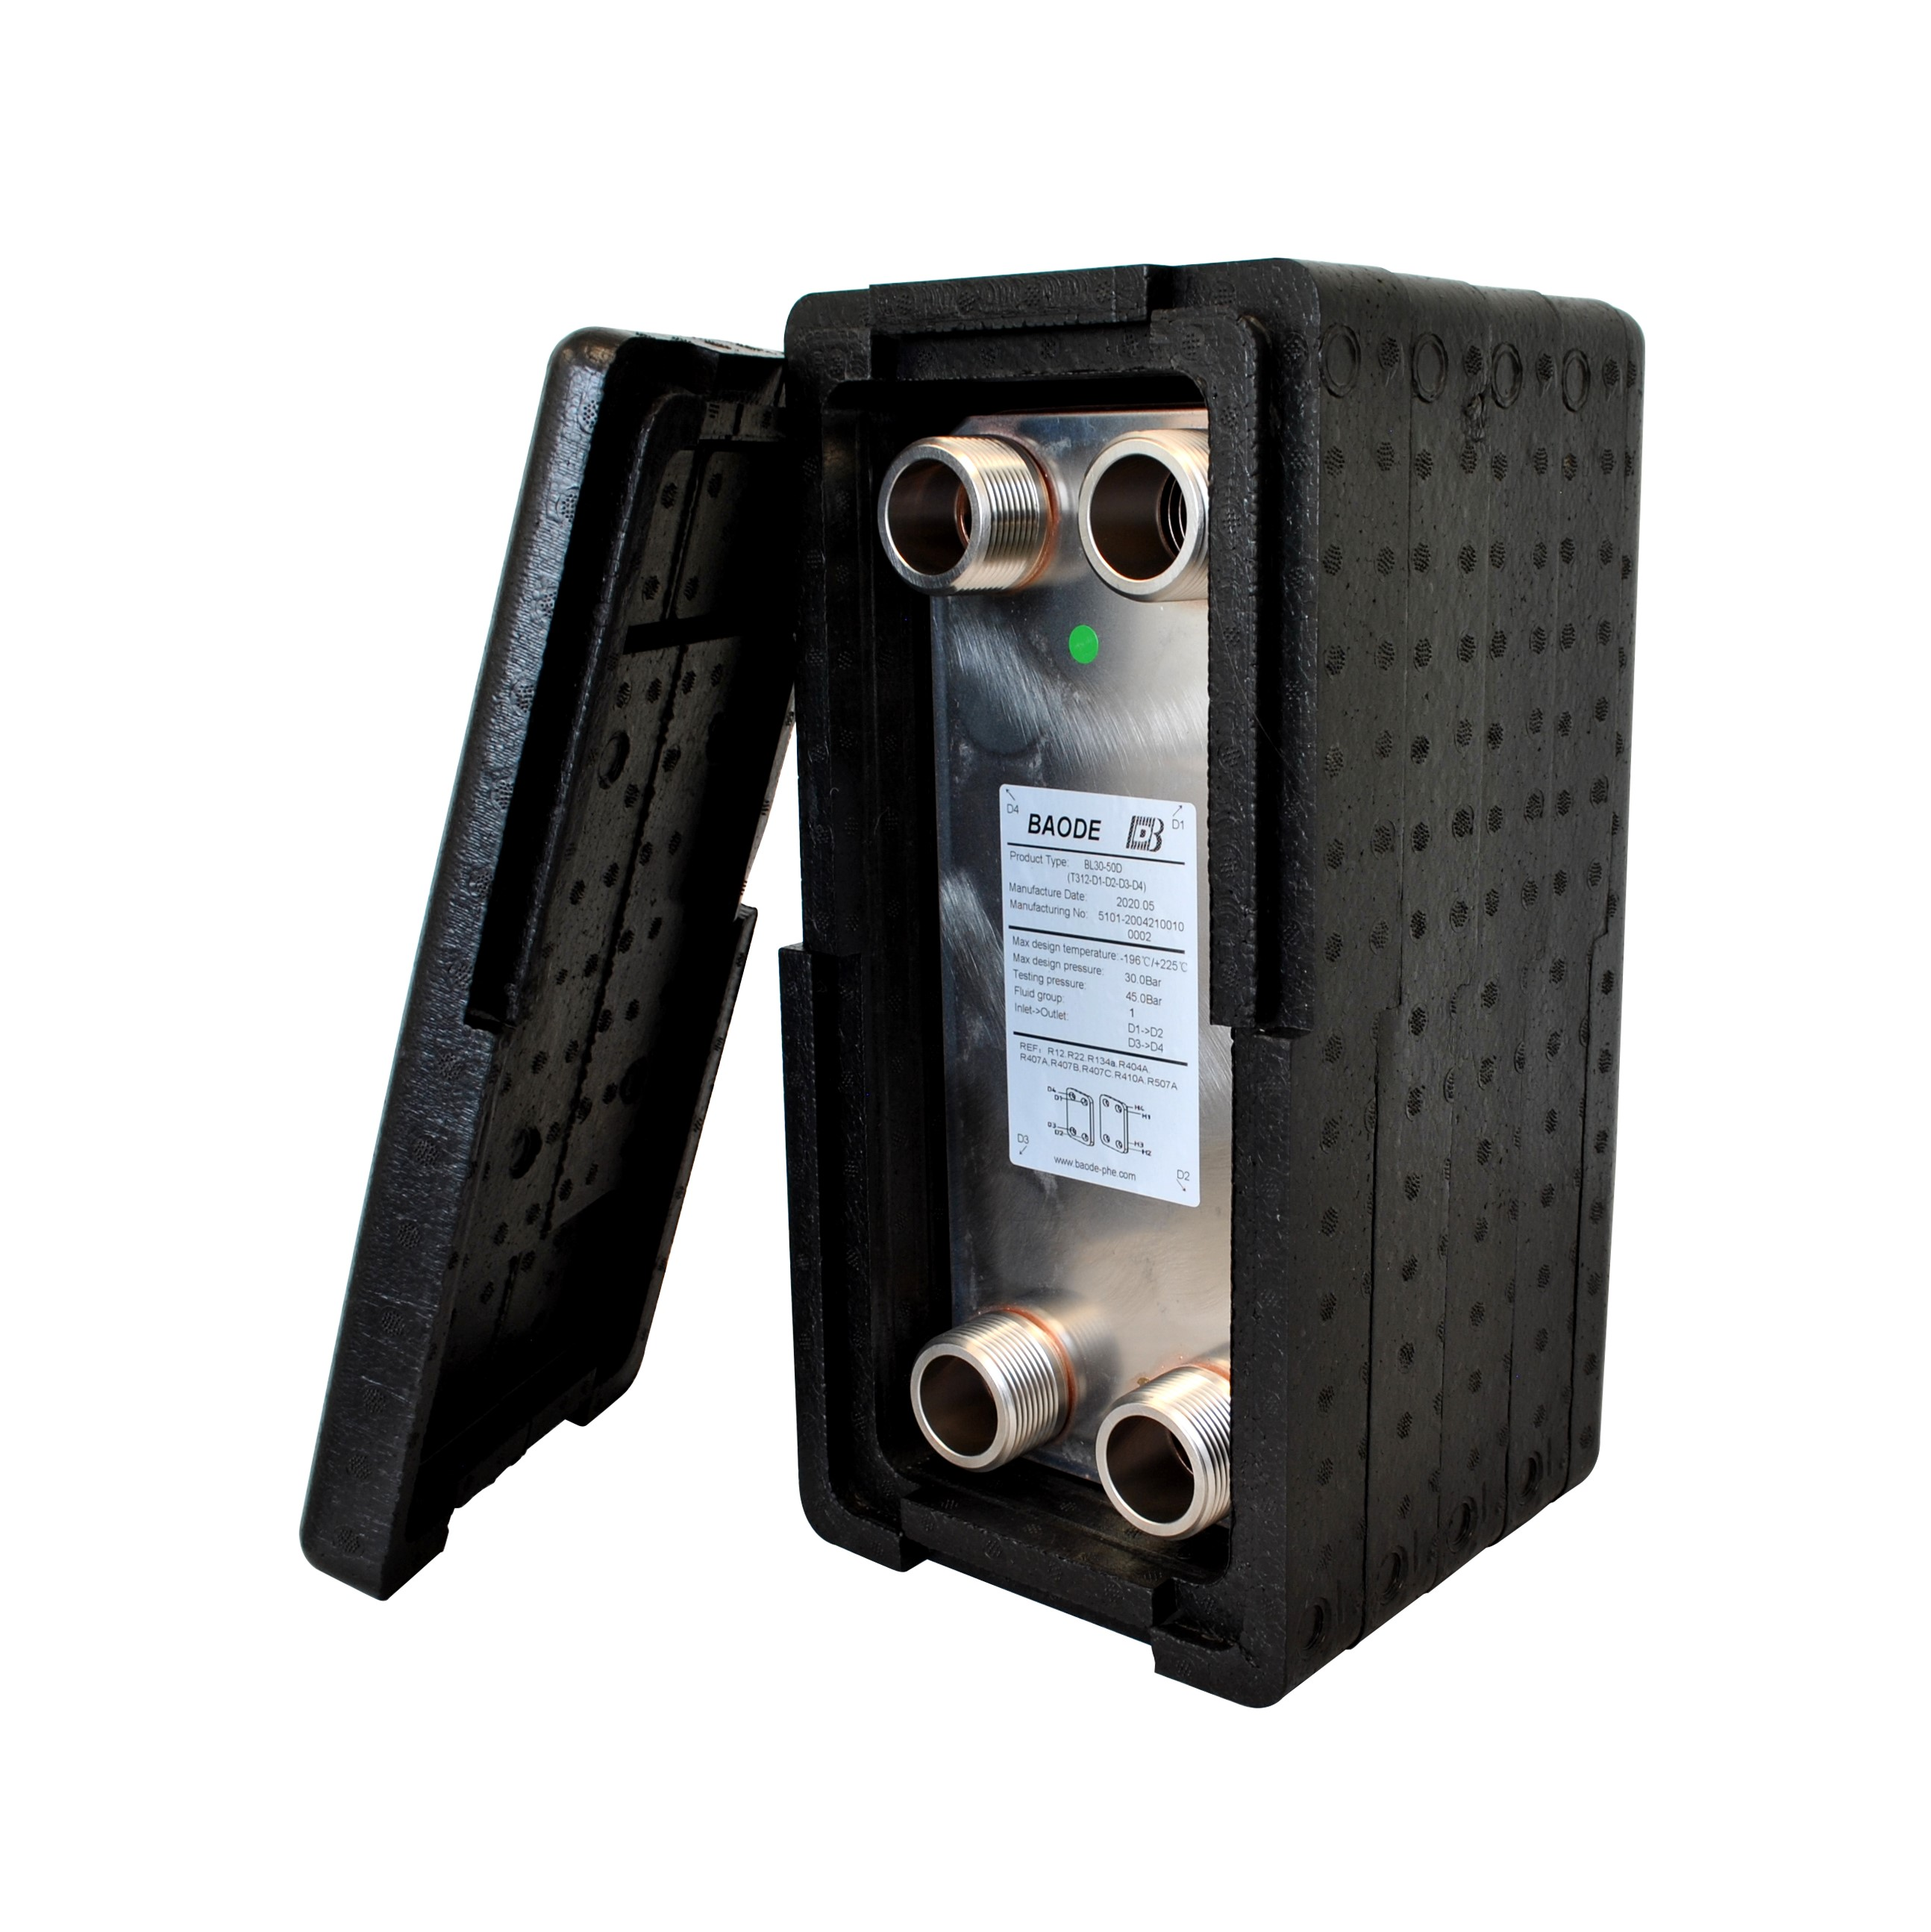 Baode BL26C Flat Plate Heat Exchanger - 50 Plate With Insulation Kit - 1.25""